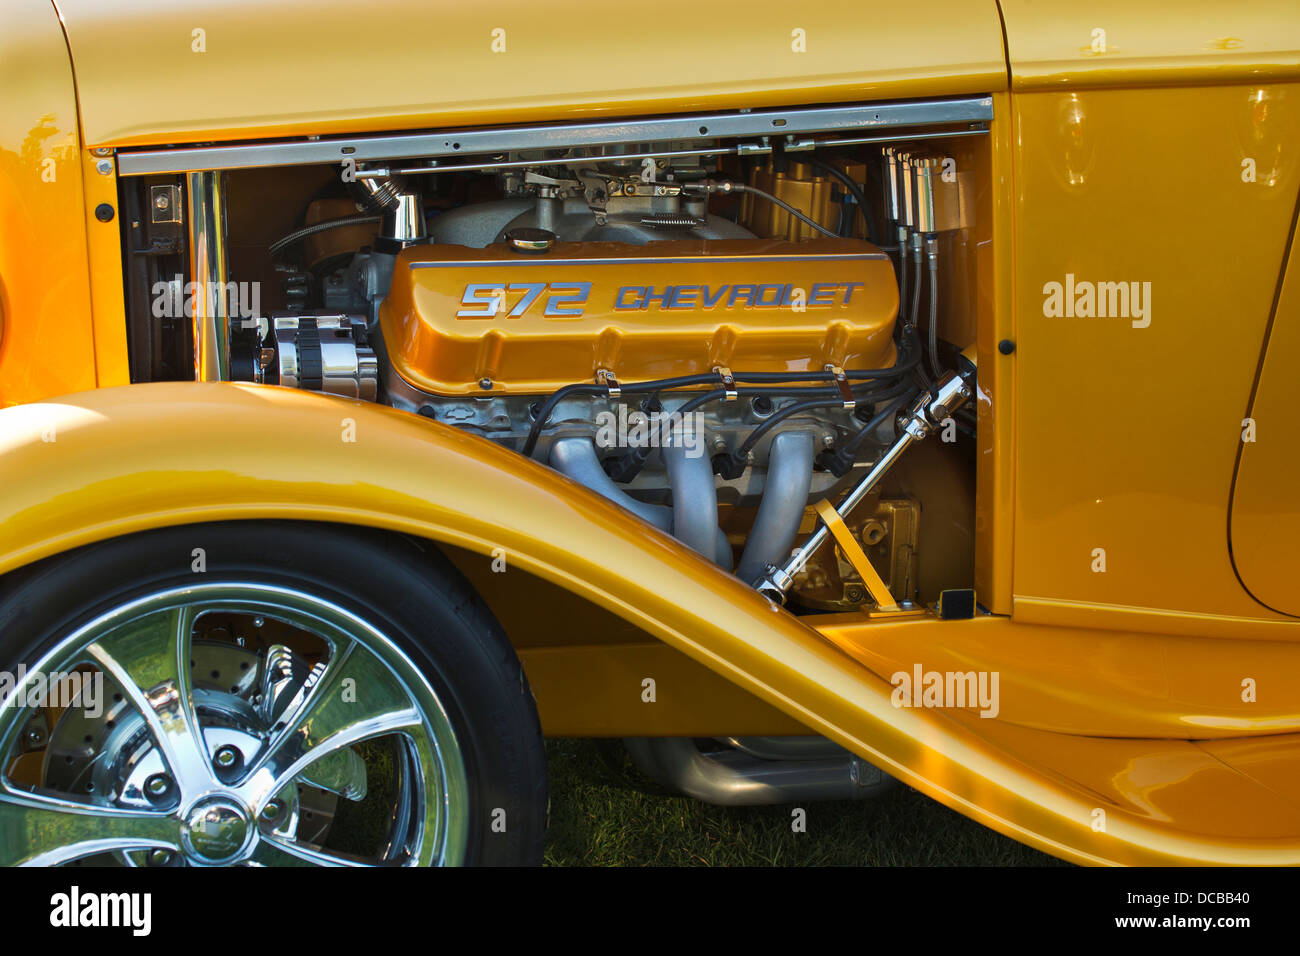 572 Cubic Inch Big Block Chevrolet Engine In 1932 Ford